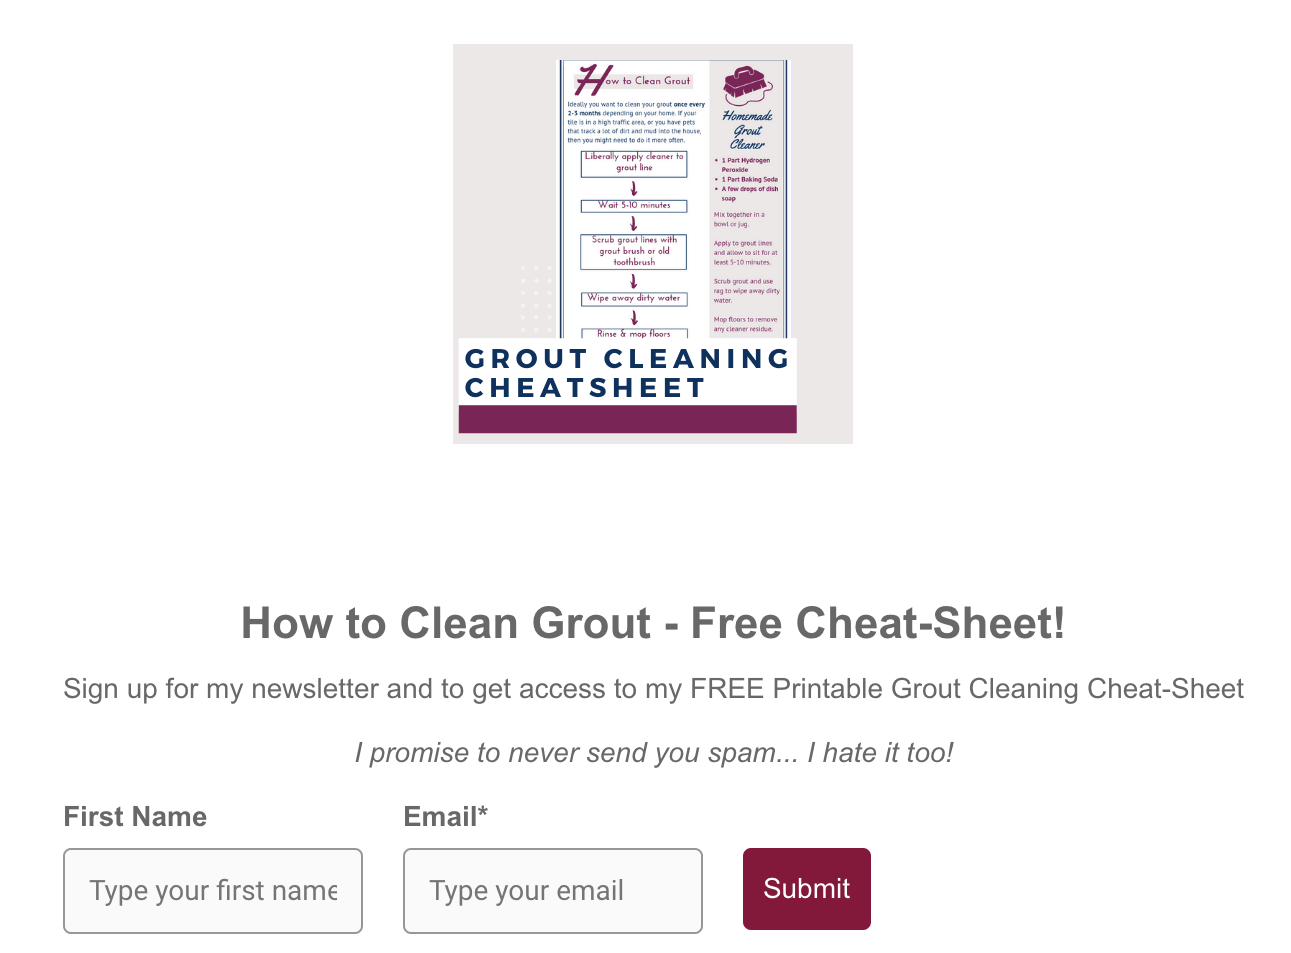 The cheat sheet lead magnet is a great option. It's very easy to create.